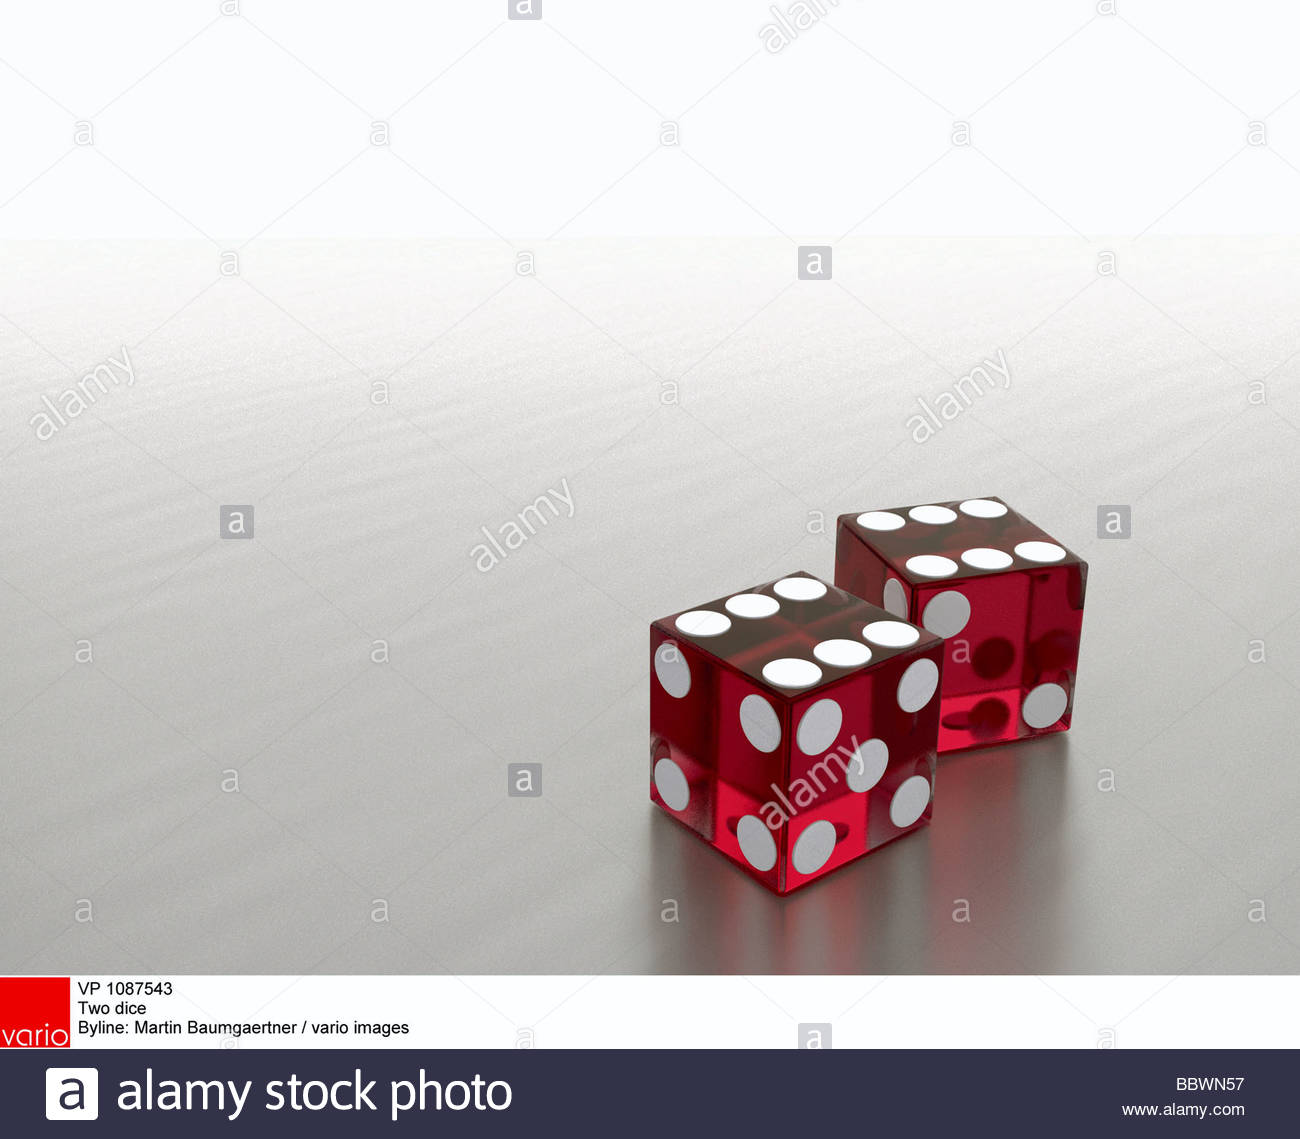 Two dice - Stock Image